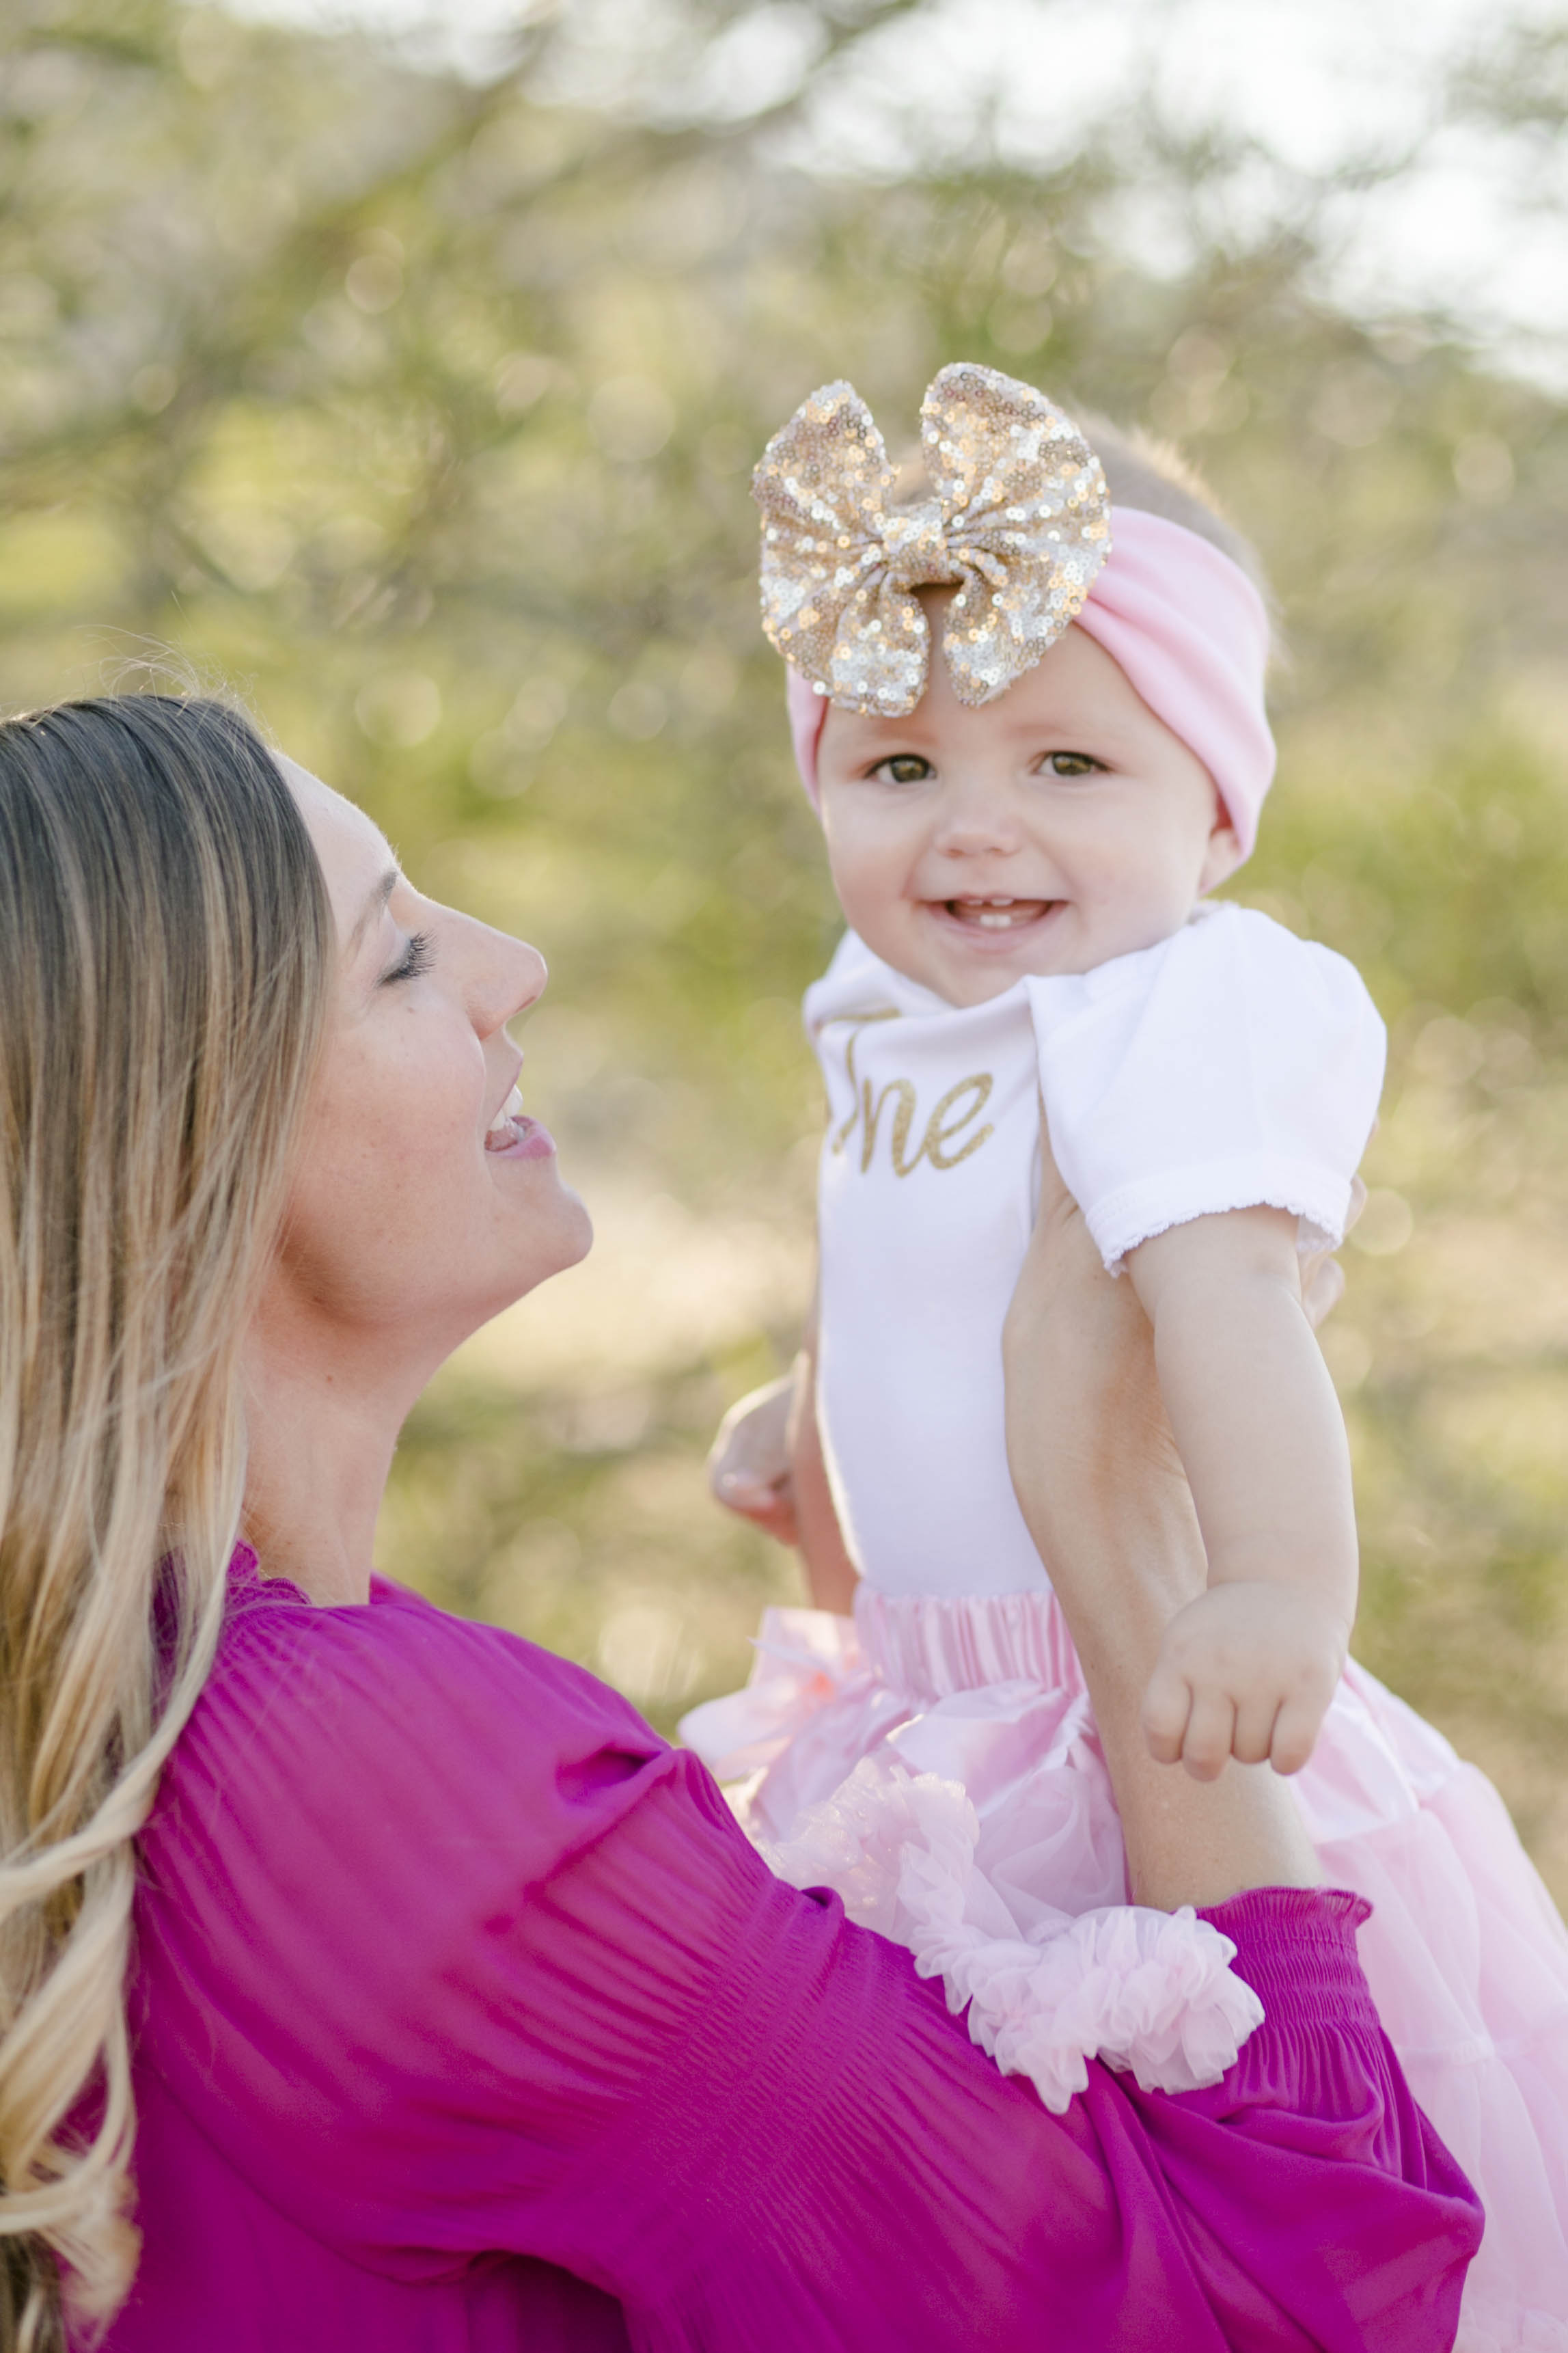 Isla Cutrano1st Bday shoot-13.jpg